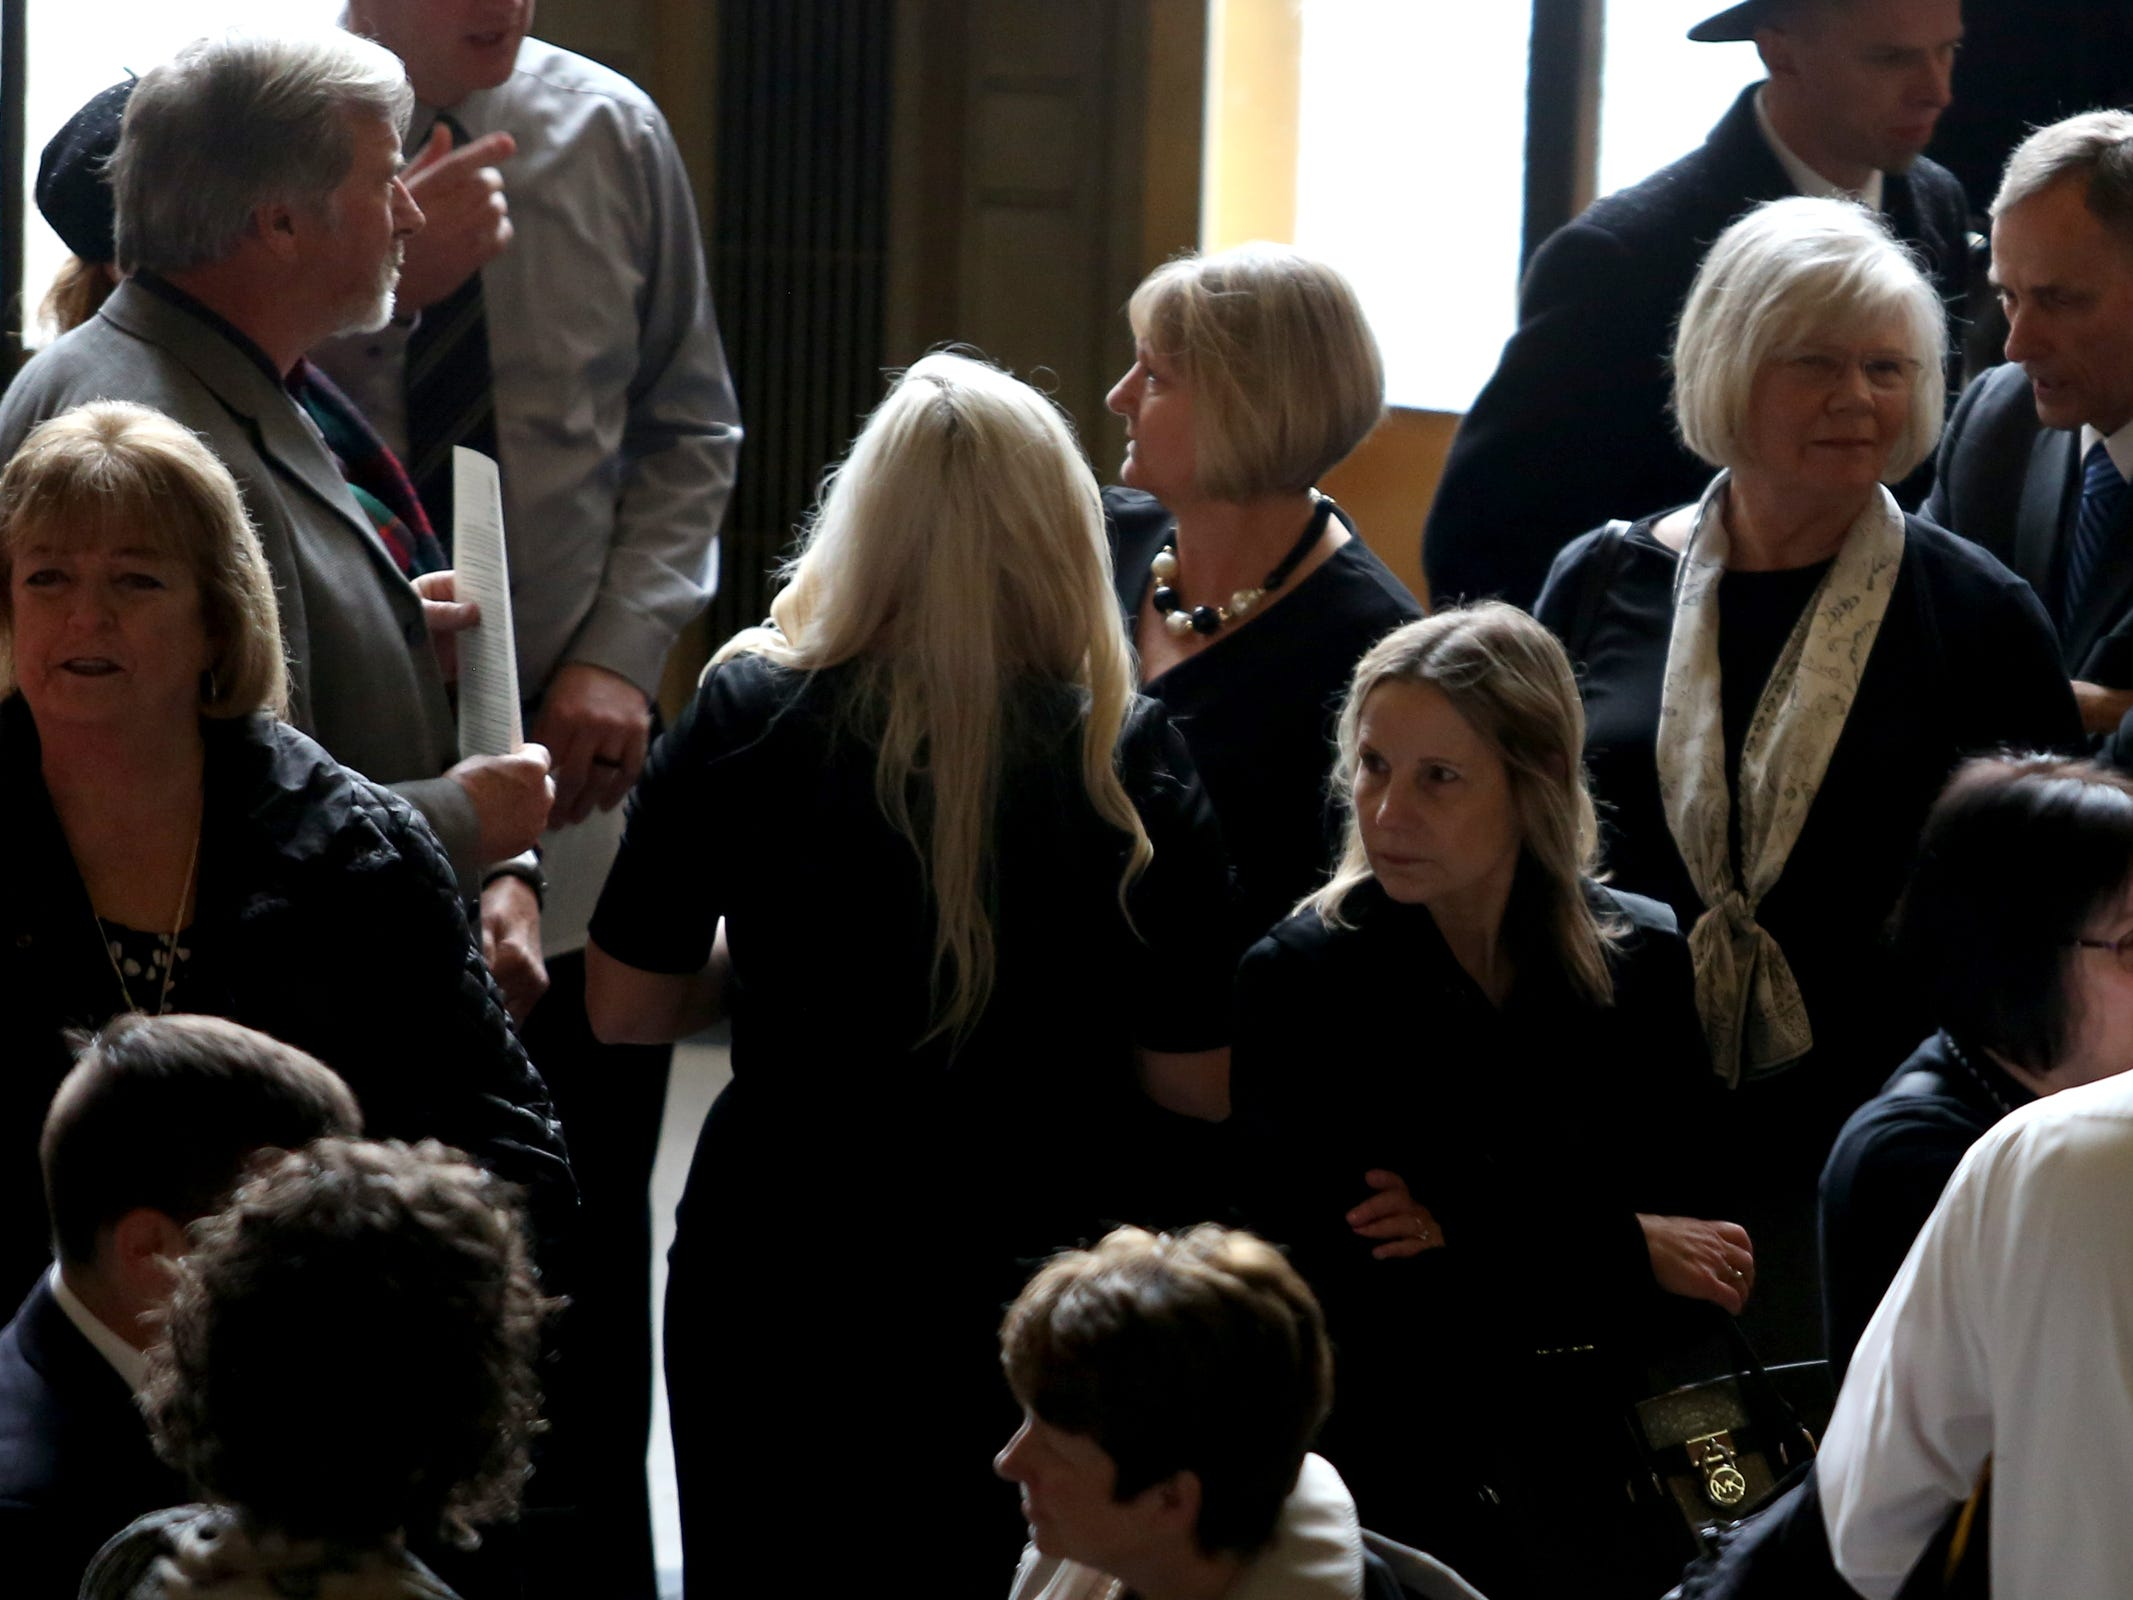 Friends and family gather as Secretary of State Dennis Richardson lies in state in the rotunda at the Oregon State Capitol in Salem on Wednesday, March 6, 2019.